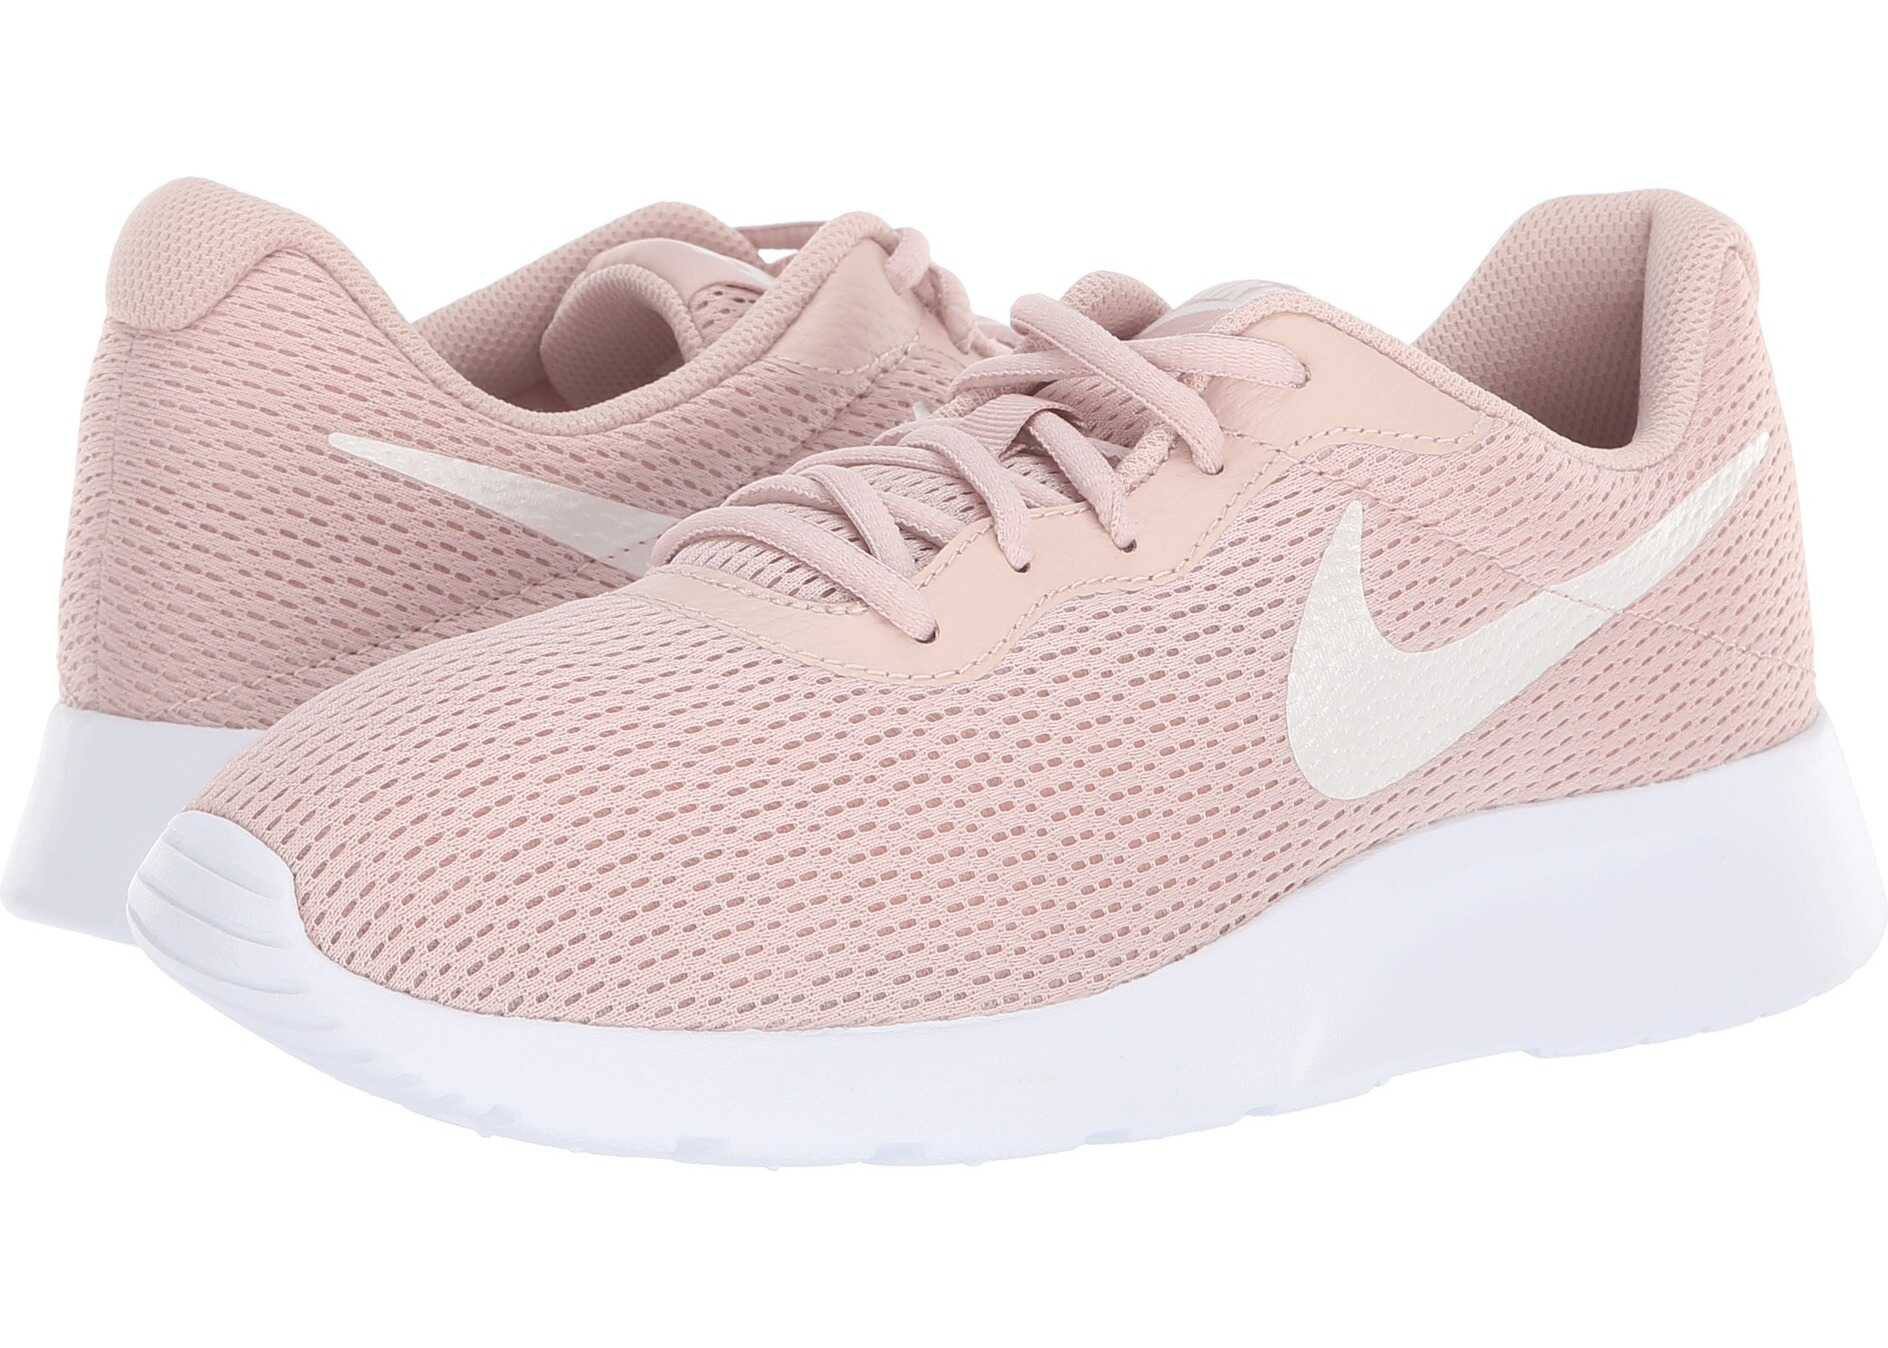 Nike Tanjun Particle Beige/Phantom/White